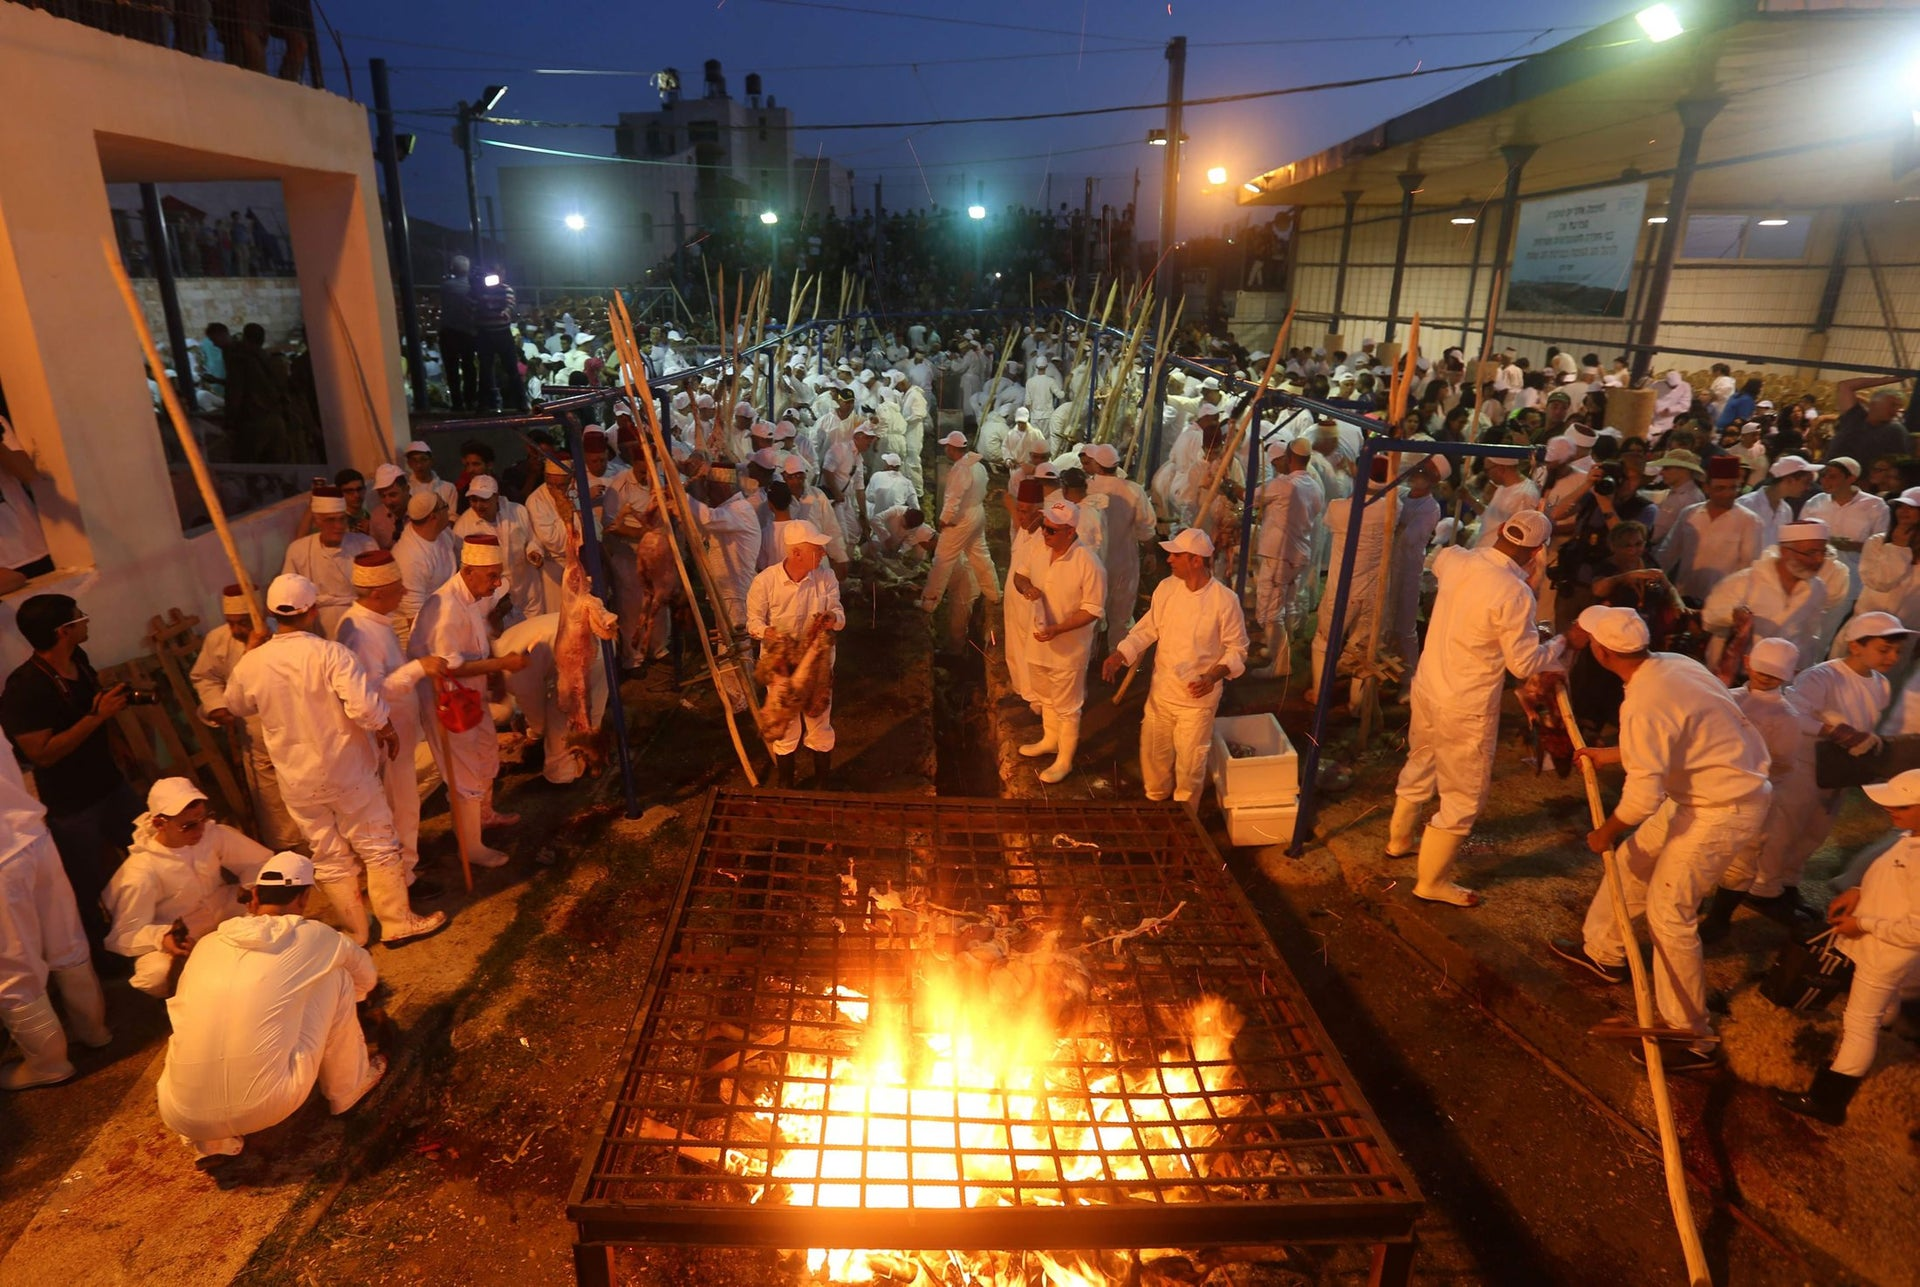 Samaritans roast the animals after slaughter atop Mt. Gerizim as part of the annual Passover sacrifice, this year's was held on April 20, 2016.